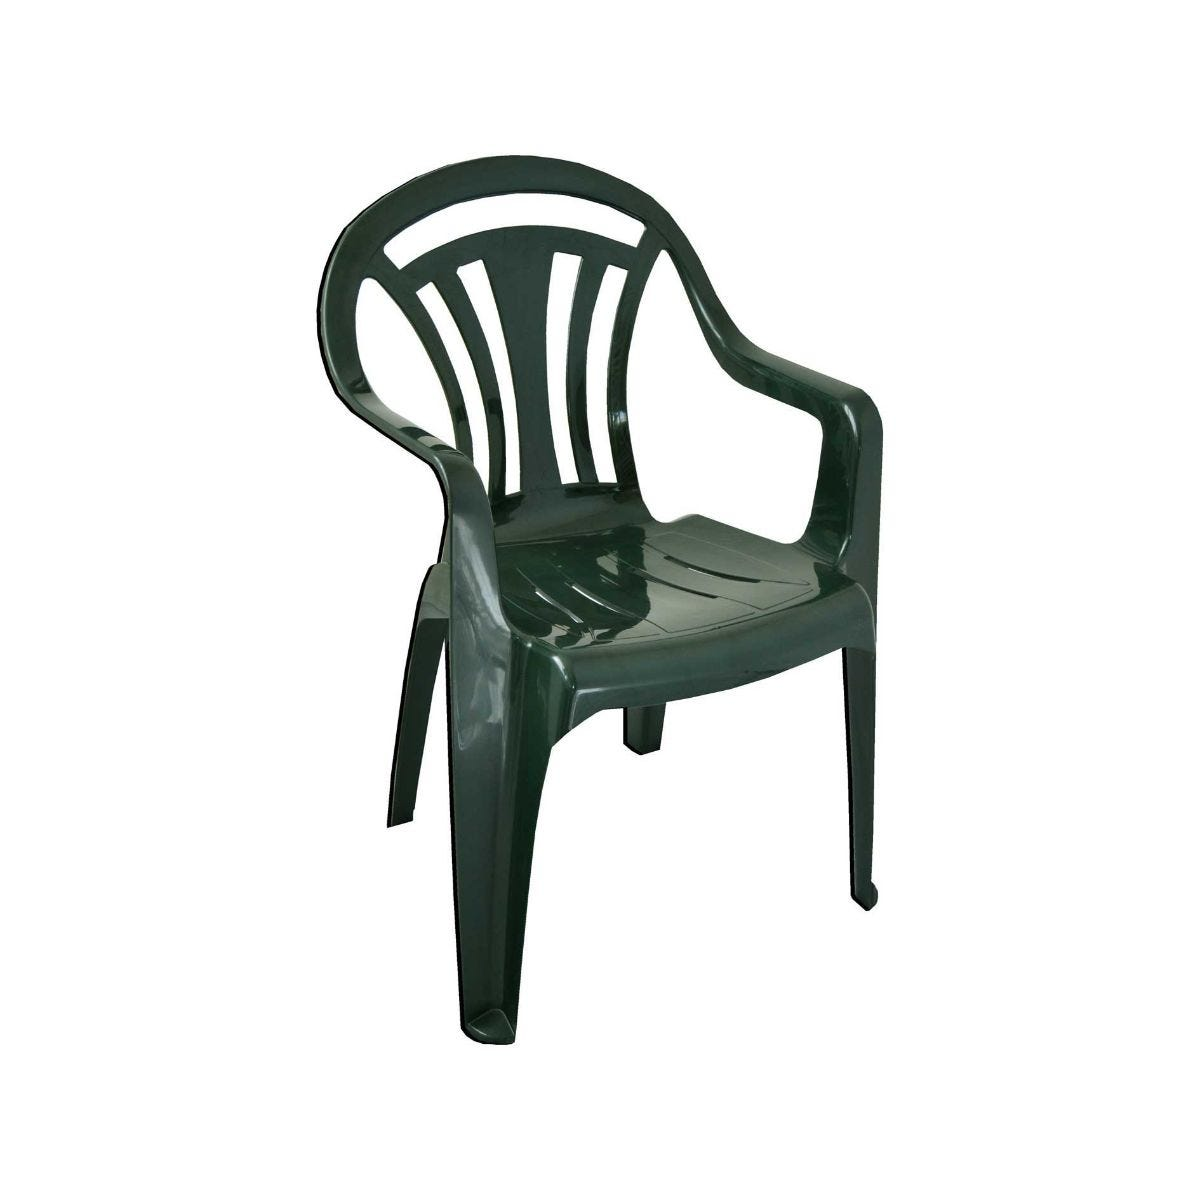 Inspirational Outdoor Plastic Chairs Rtty1com